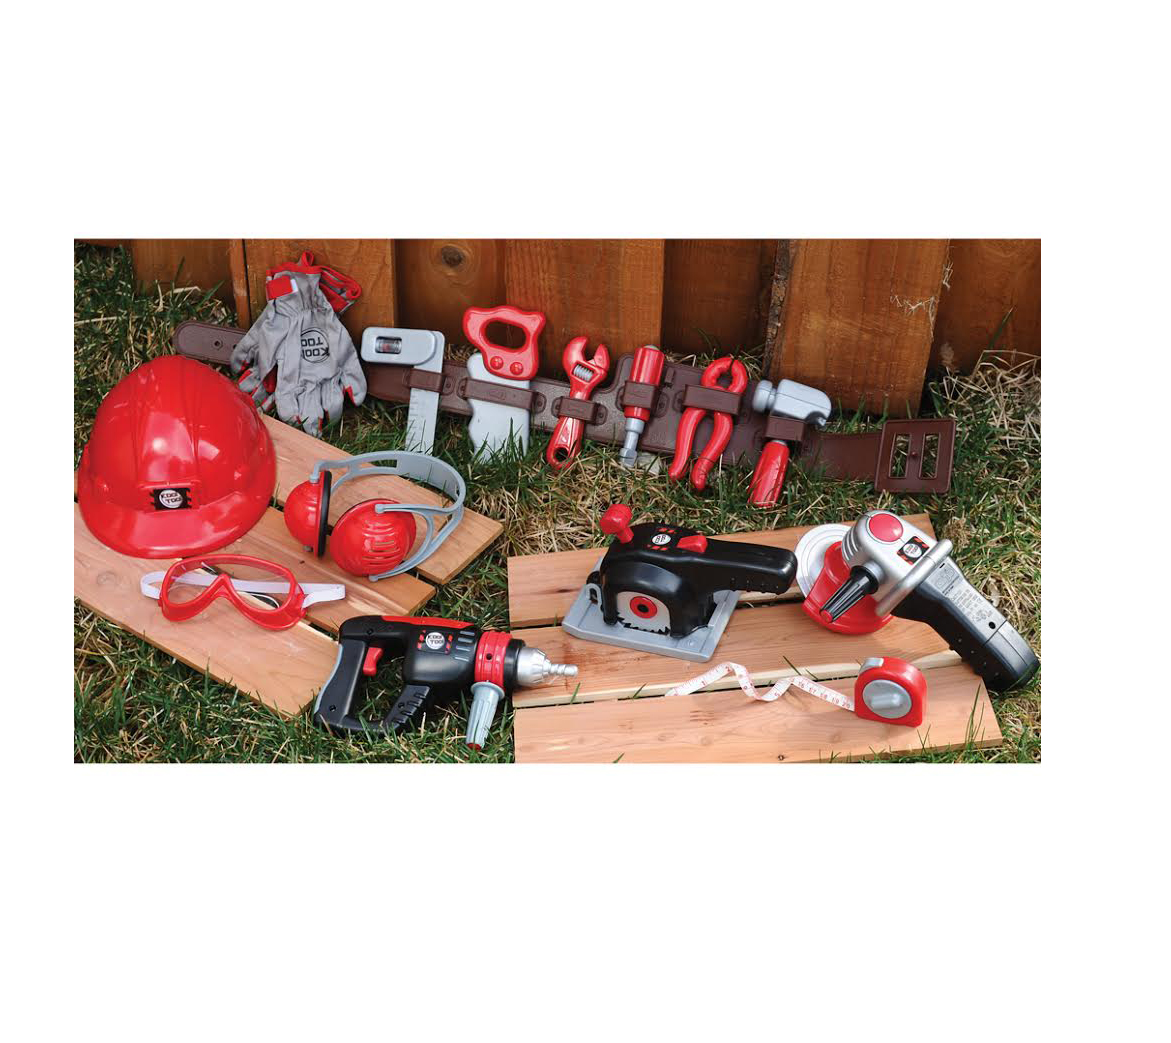 CP Toys Pretend Play Tools of the Trade with Tool Belt and Accessories by